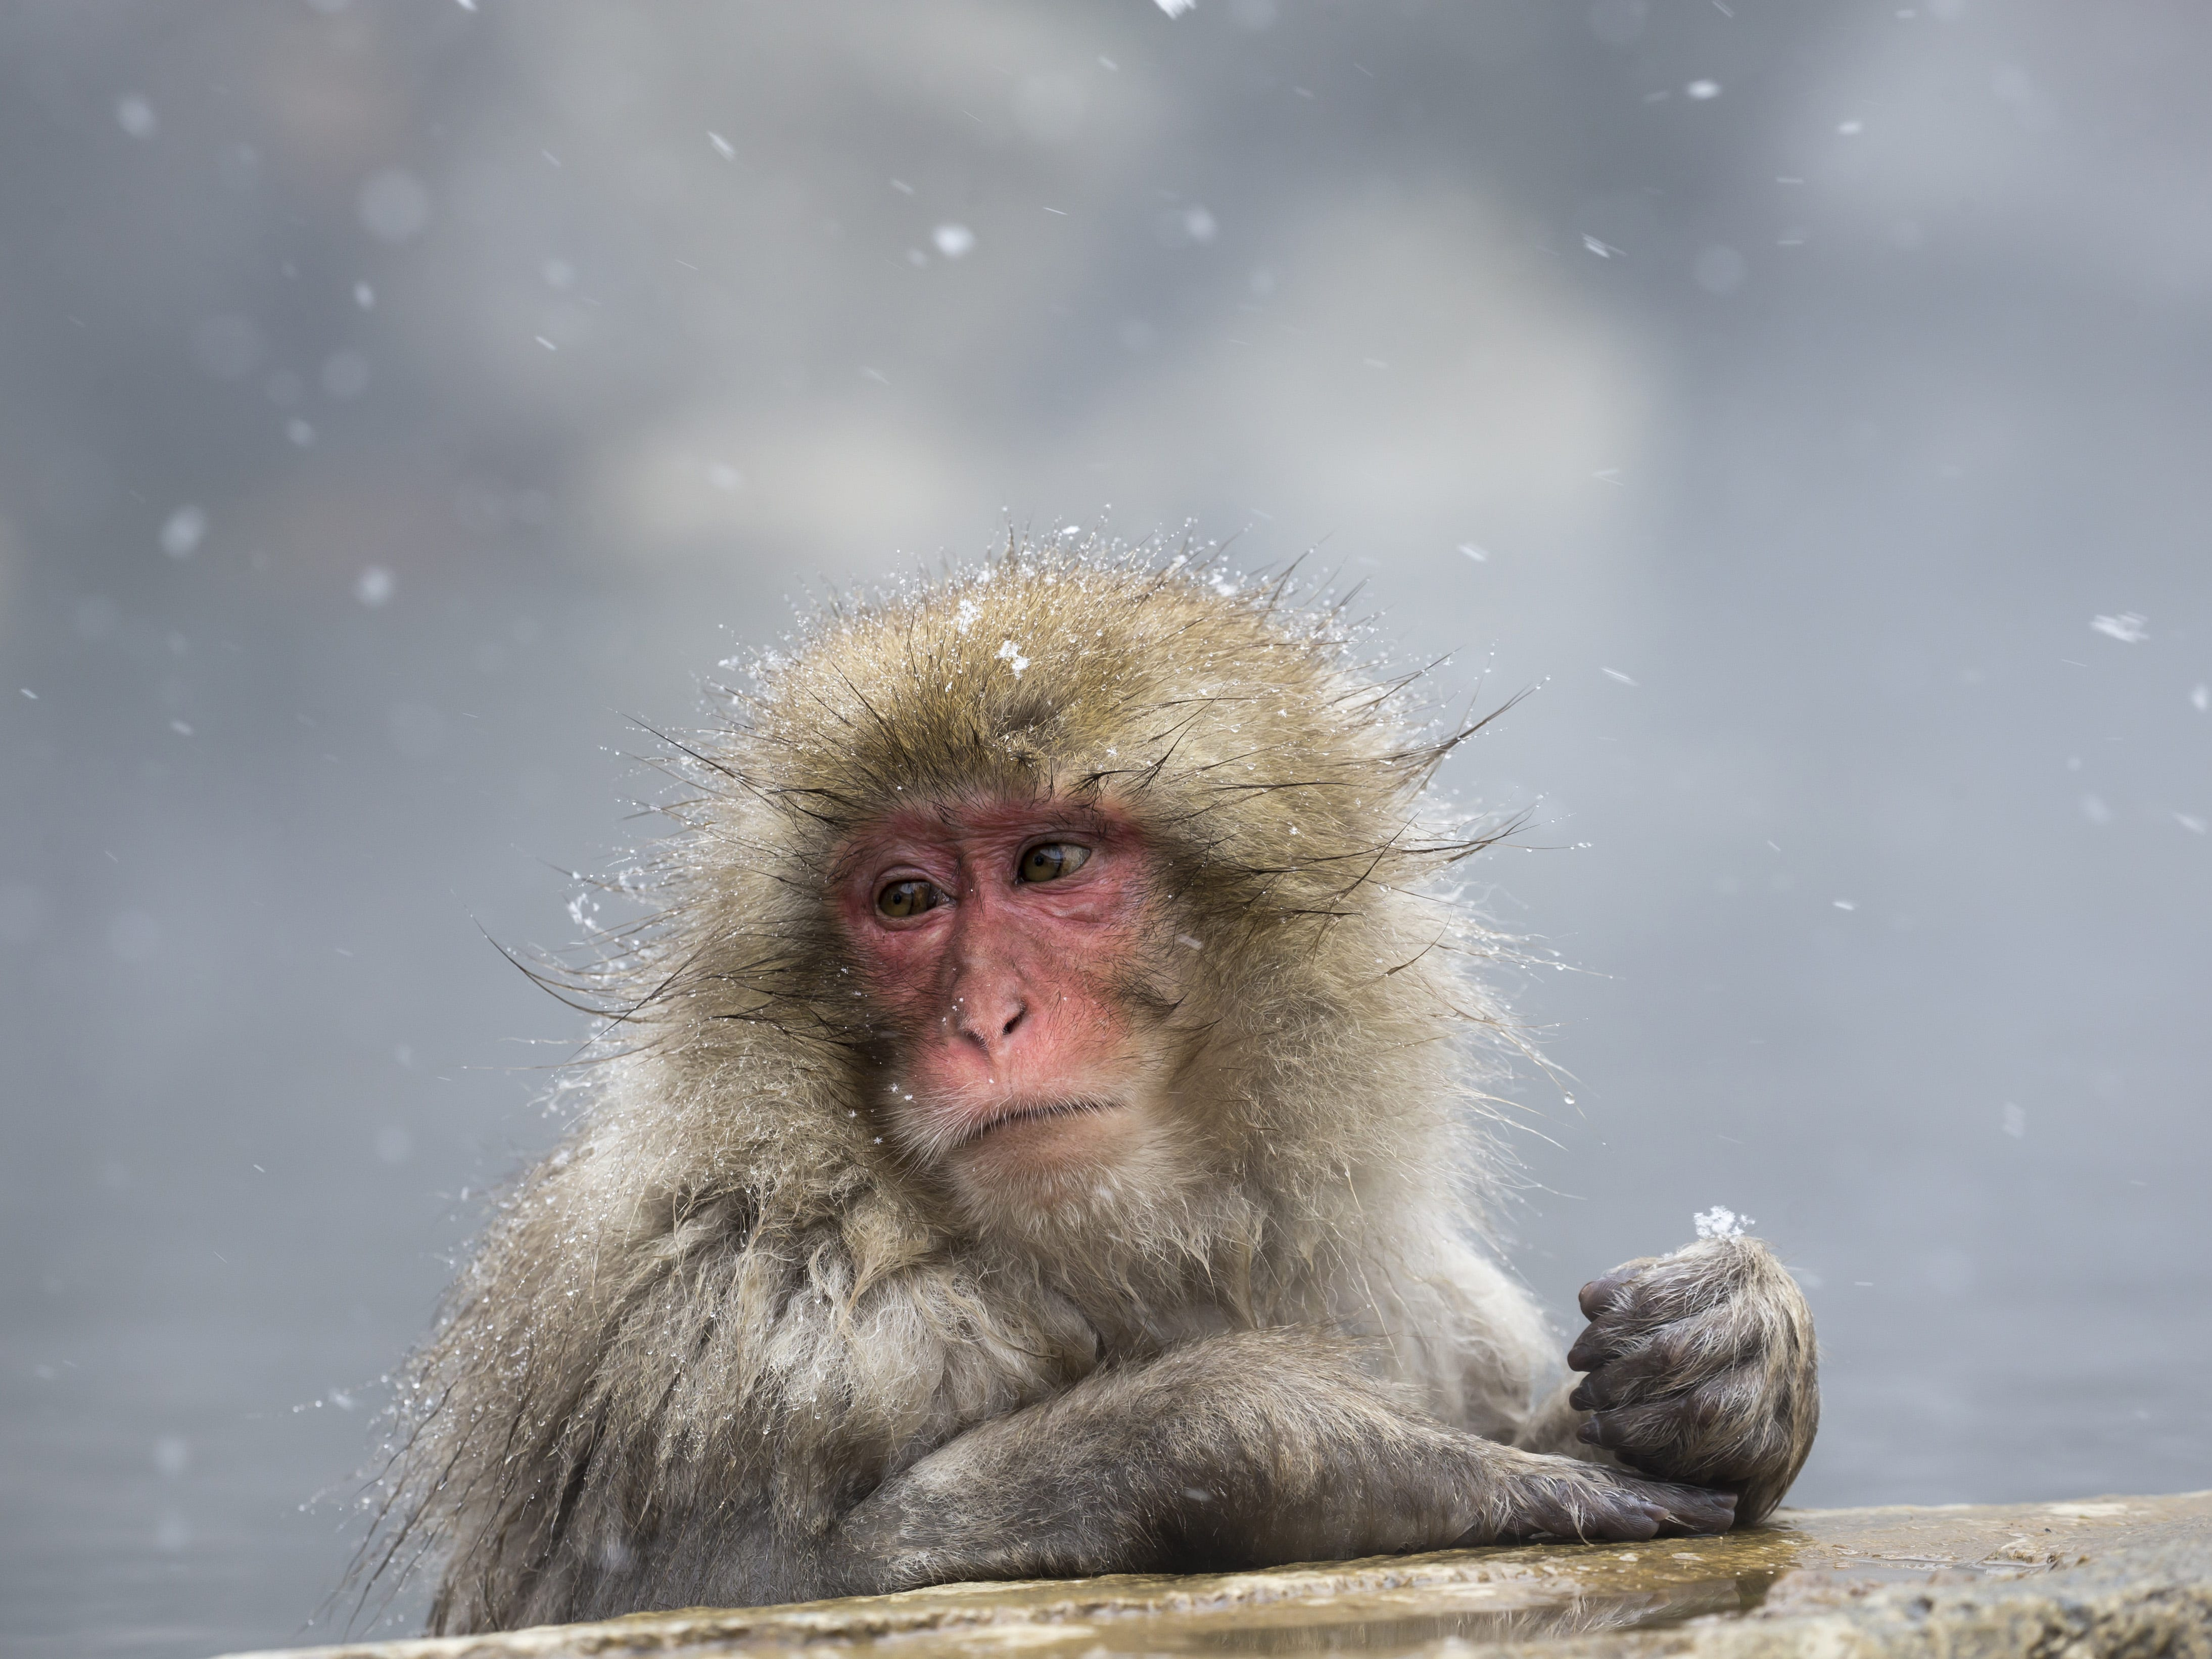 A Macaque monkey bathes in a hot spring at the Jigokudani Yaen-koen wild Macaque monkey park on Feb. 8, 2019 in Yamanouchi, Japan.